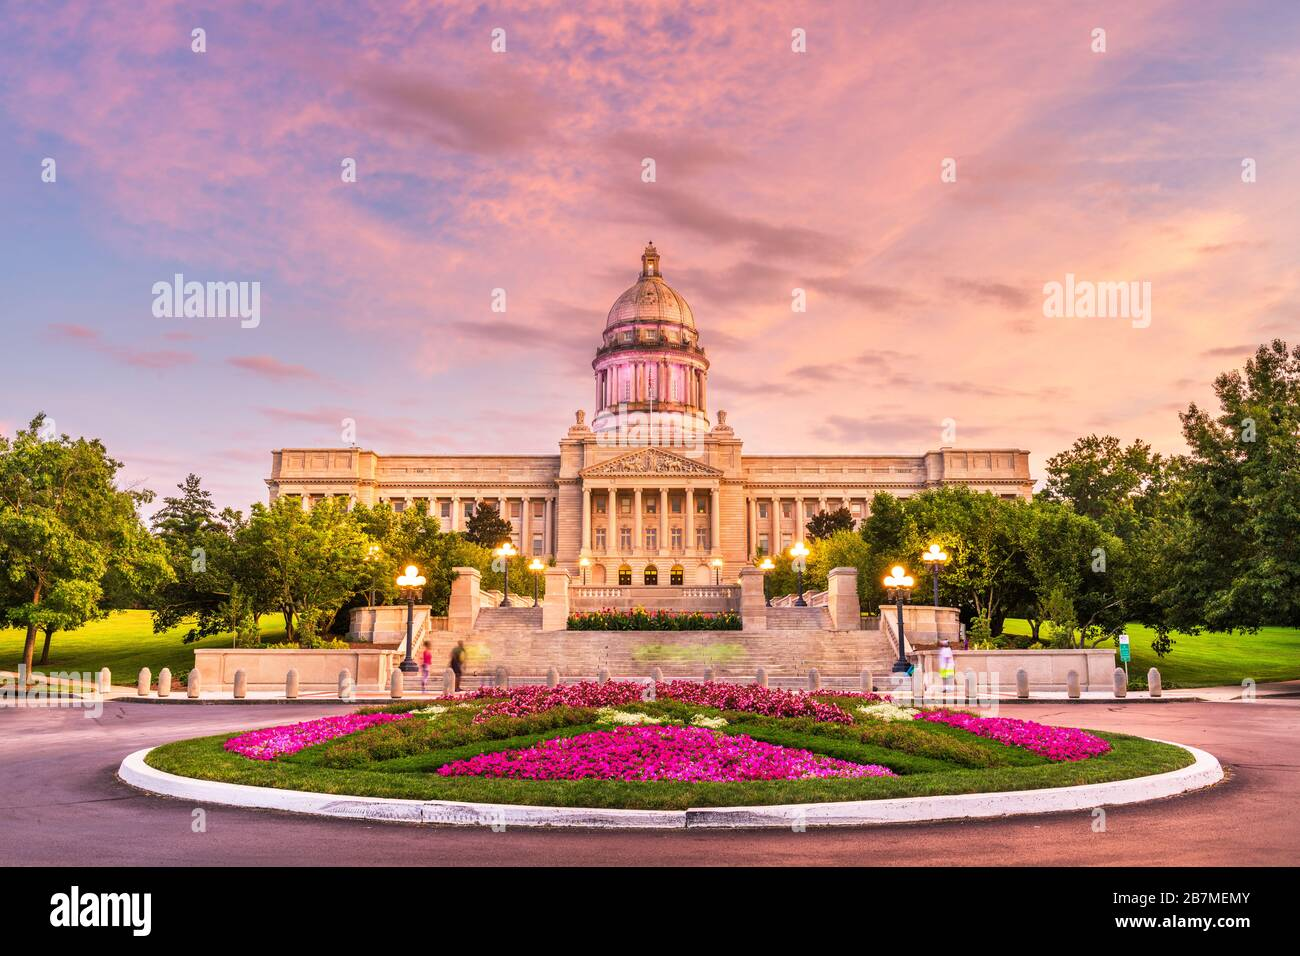 Frankfort, Kentucky, USA with the Kentucky State Capitol at dusk. Stock Photo